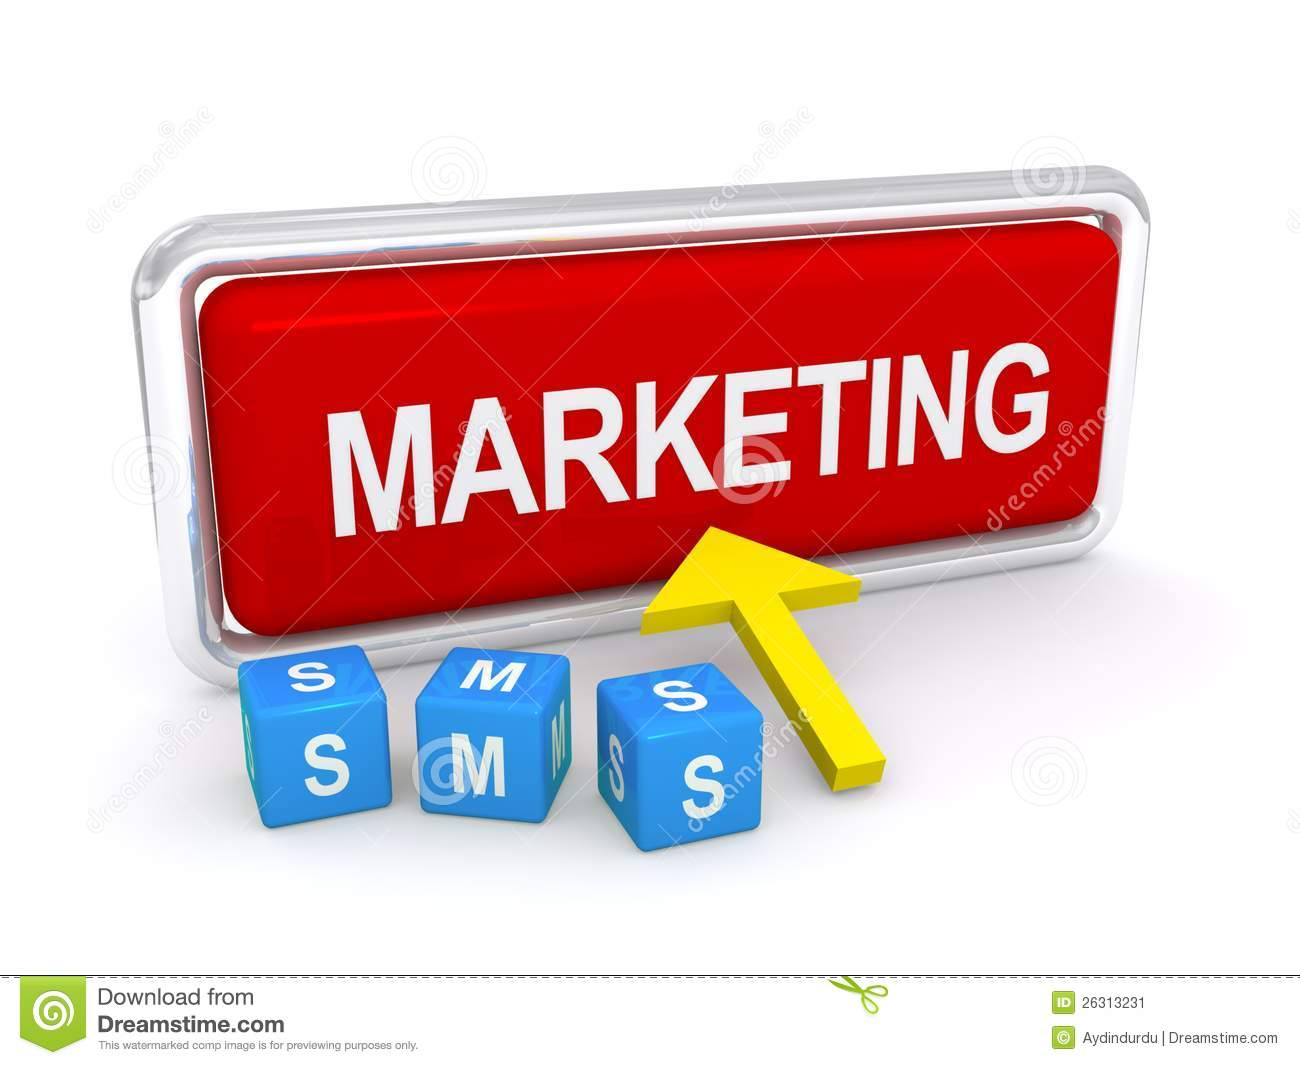 Marketing by mobile phone